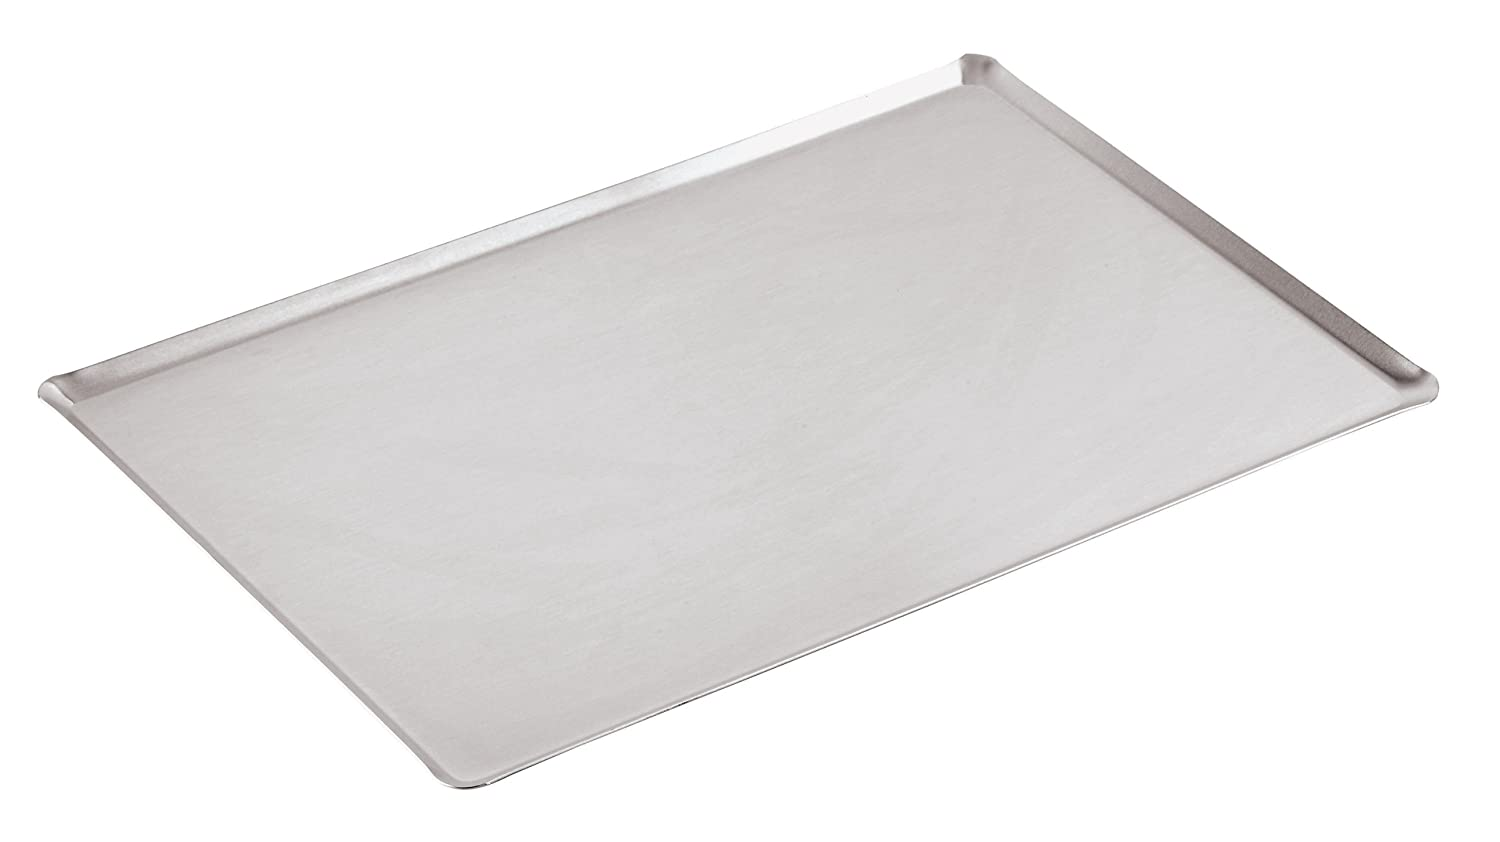 Paderno World Cuisine 23 5//8 Inch by 15 3//4 Inch Straight Sided Aluminum Baking Sheet